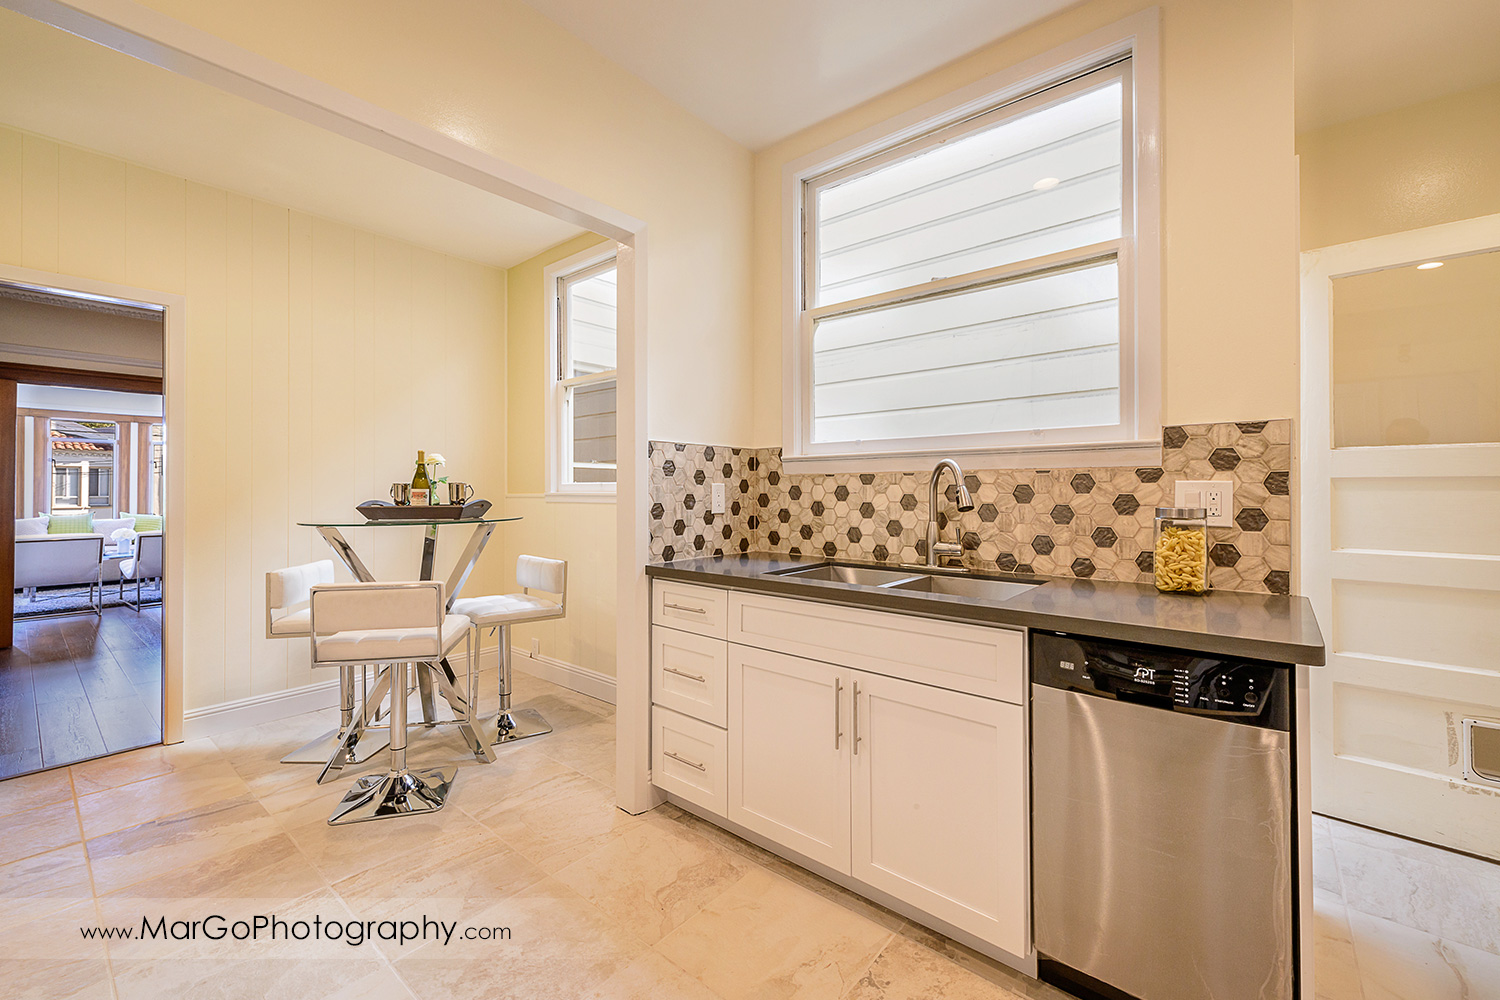 San Francisco house kitchen with view on reading corner - real estate photography